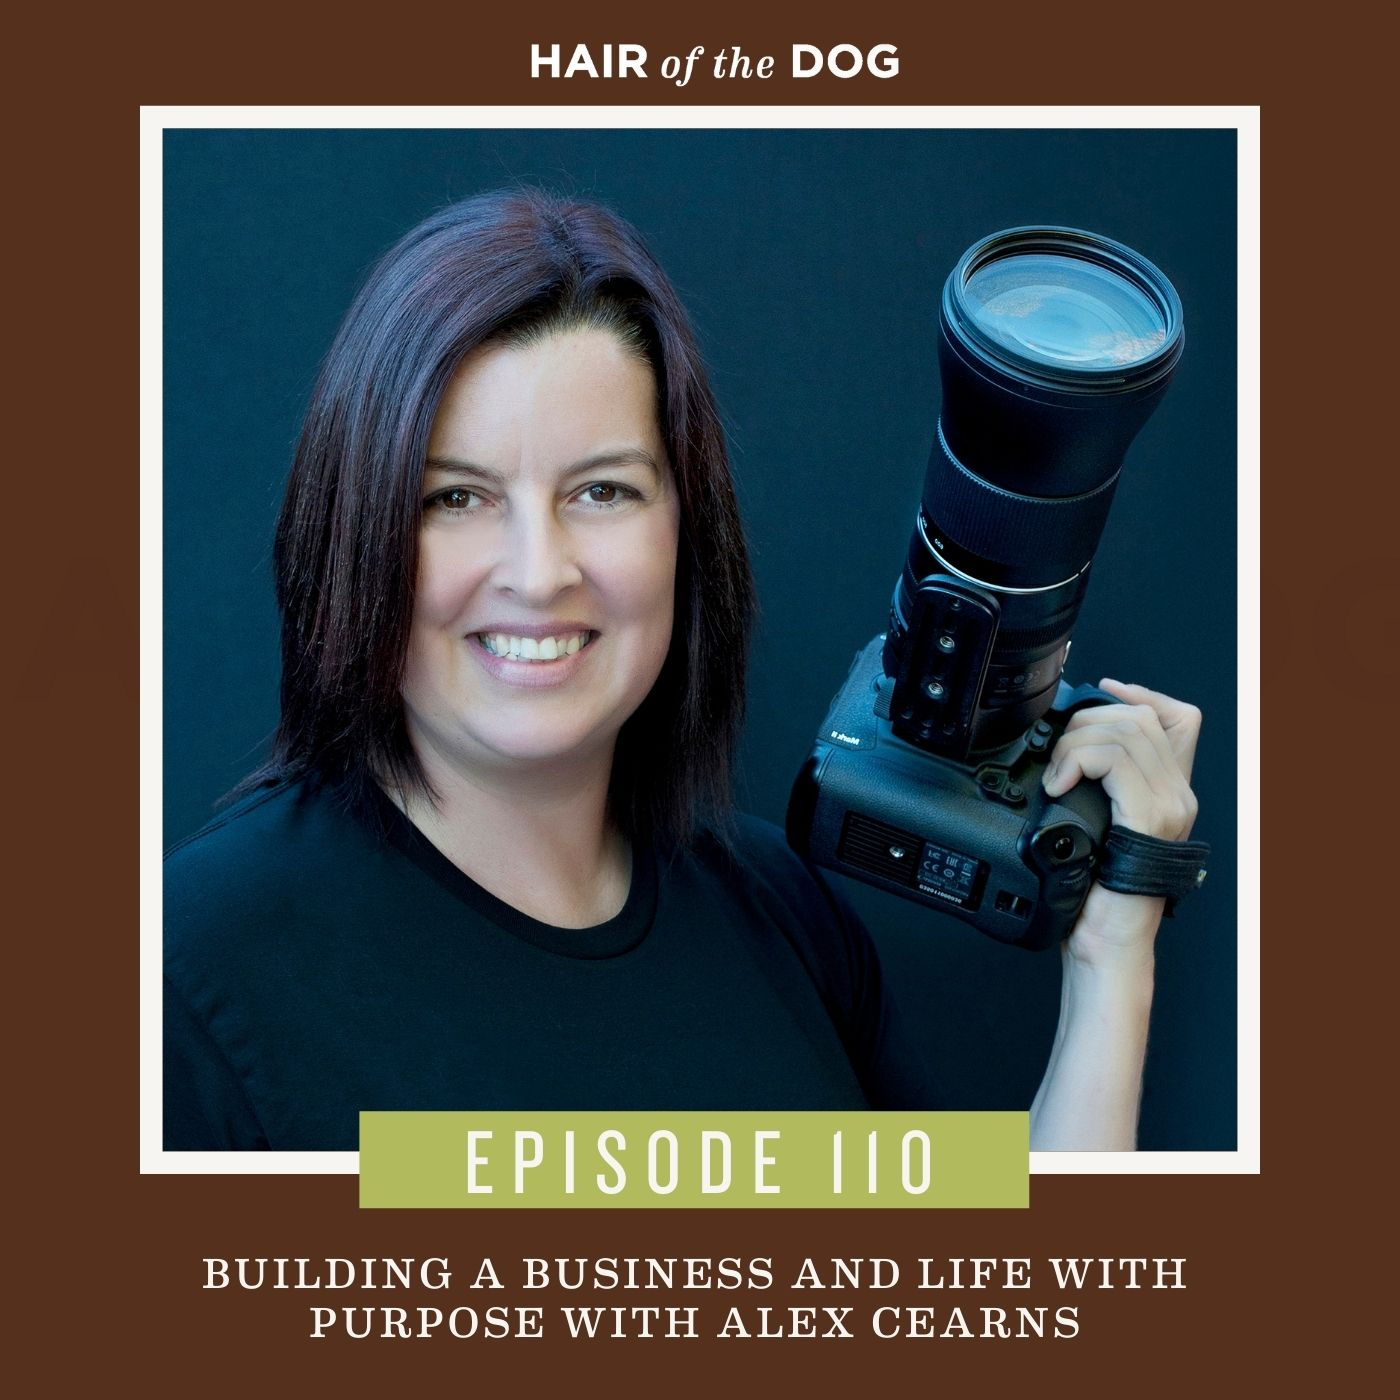 Building a Business and Life with Purpose with Alex Cearns